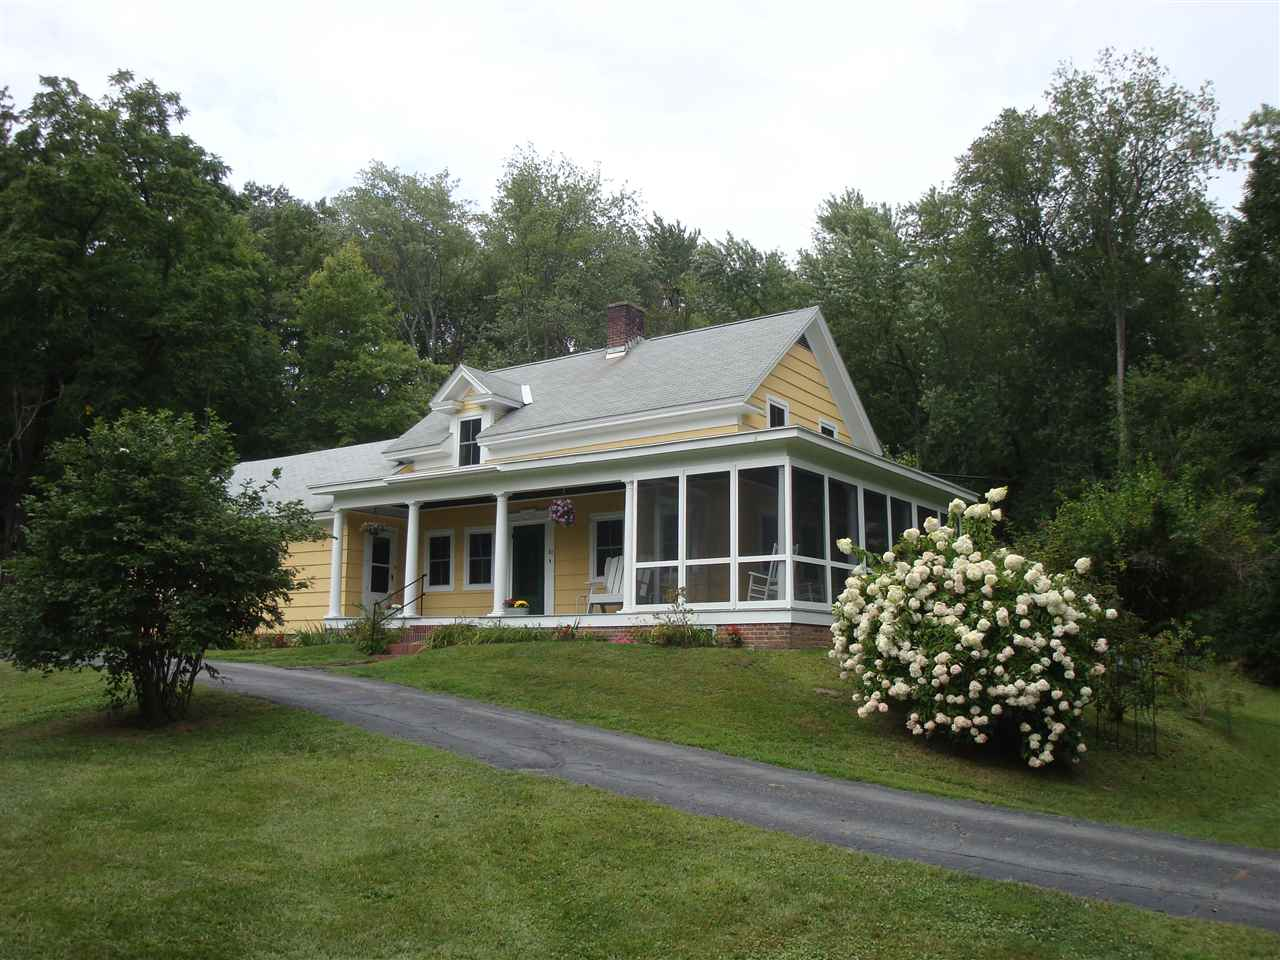 MLS 4773671: 82 River Road, Hinsdale NH